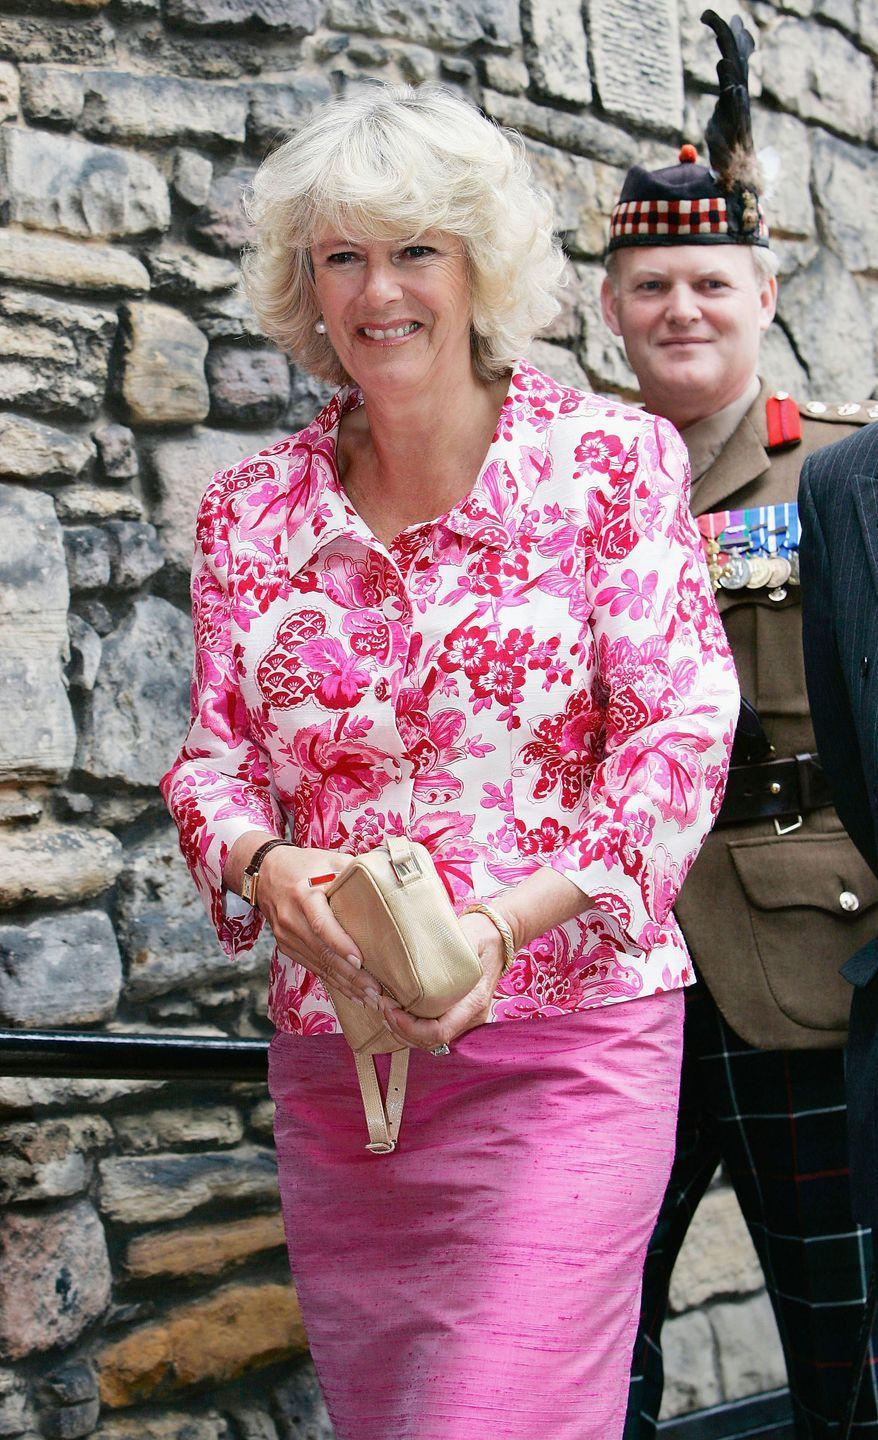 """<p><a href=""""https://www.townandcountrymag.com/society/tradition/g36433449/princess-diana-queen-elizabeth-royals-in-florals-photos/"""" rel=""""nofollow noopener"""" target=""""_blank"""" data-ylk=""""slk:Royals love florals"""" class=""""link rapid-noclick-resp"""">Royals love florals</a>, as Camilla showed in this pink floral top and pink skirt combo at Edinburgh Castle in 2005.</p>"""